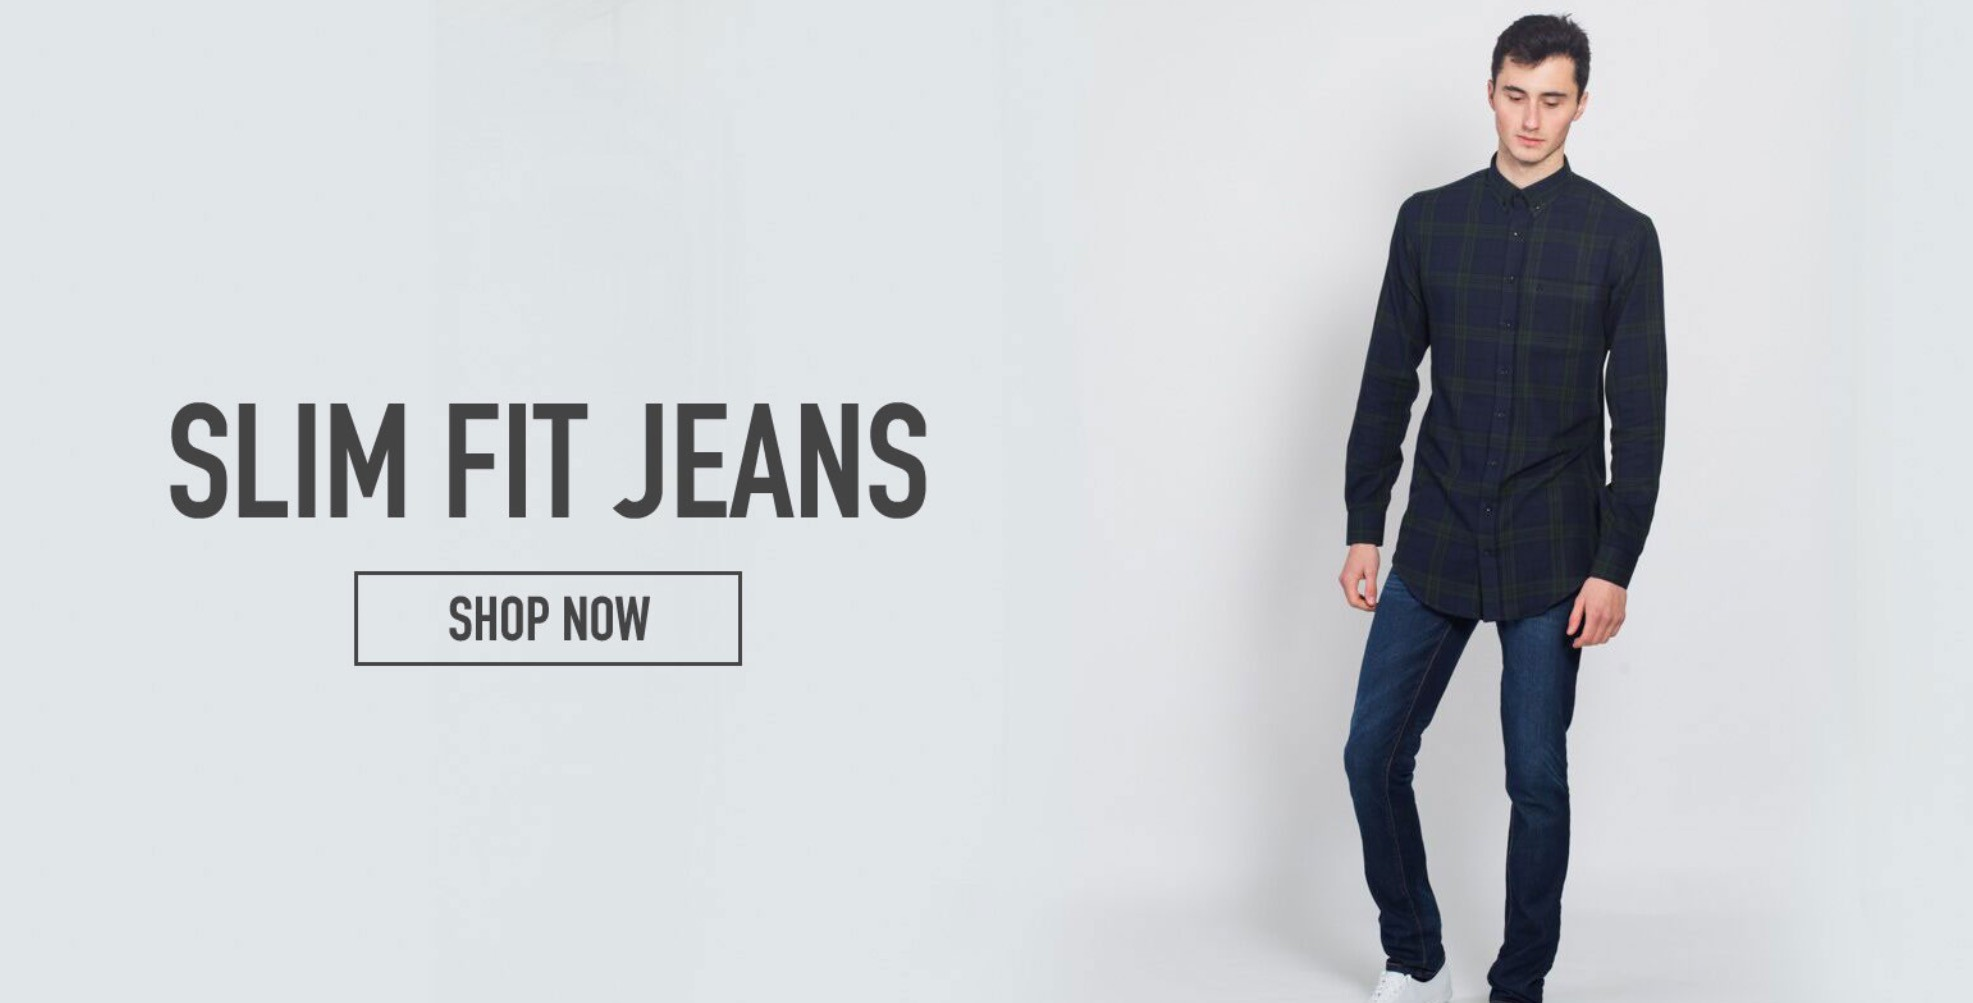 Jeans for Tall Skinny Guys: My New favorites from 2tall.com